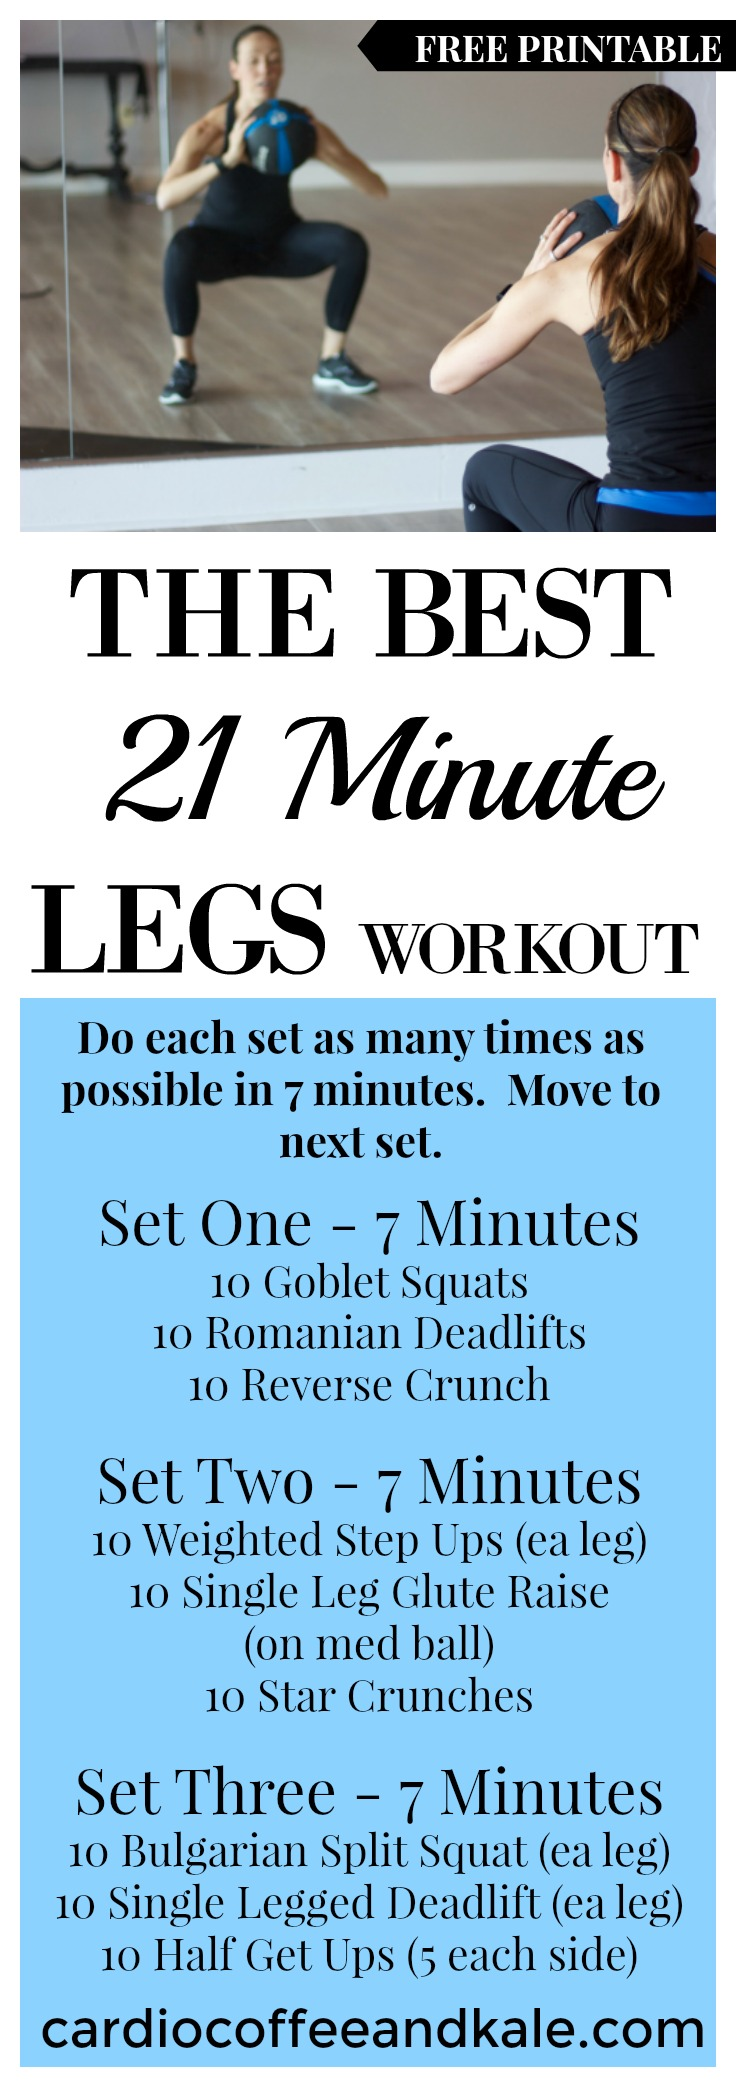 Short on time?  This 21 minute workout is the perfect lower body, fat burning circuit!  .jpg